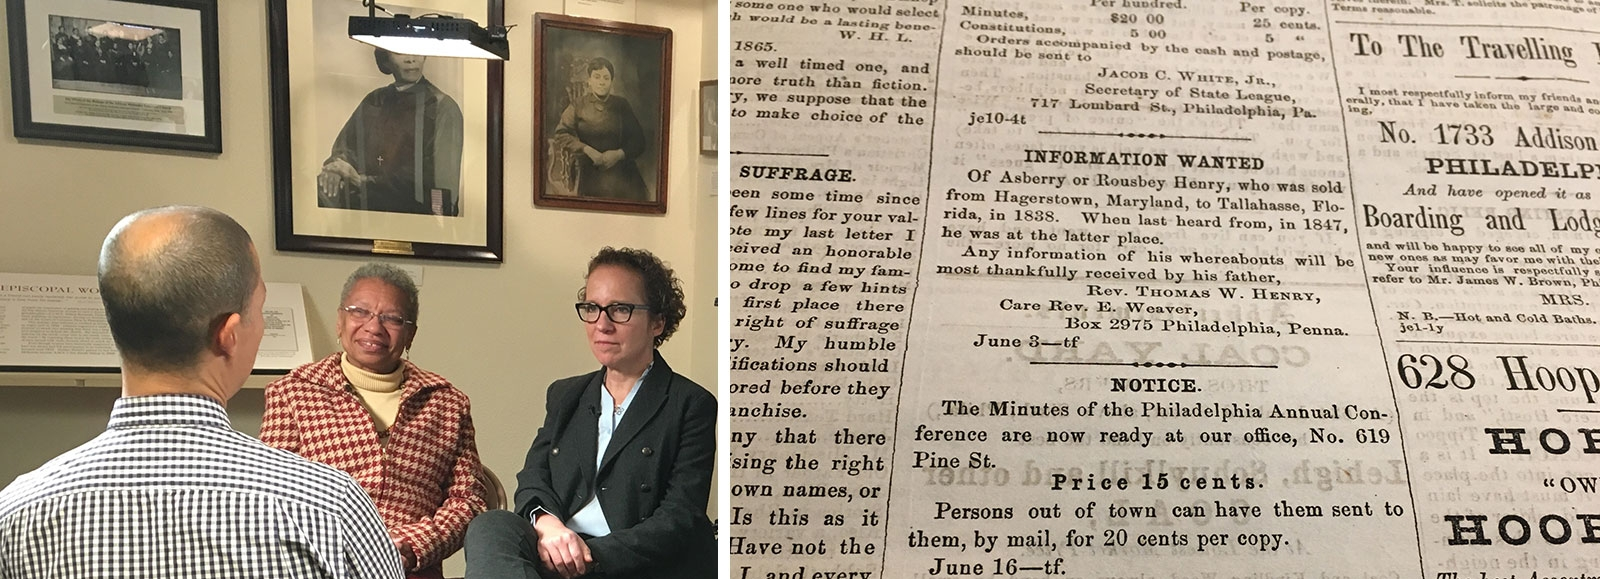 Judy Giesberg, PhD, and a researcher from Mother Bethel African Methodist Episcopal Church in Philadelphia are pictured left, and on the right is one of the Information Wanted Ads.